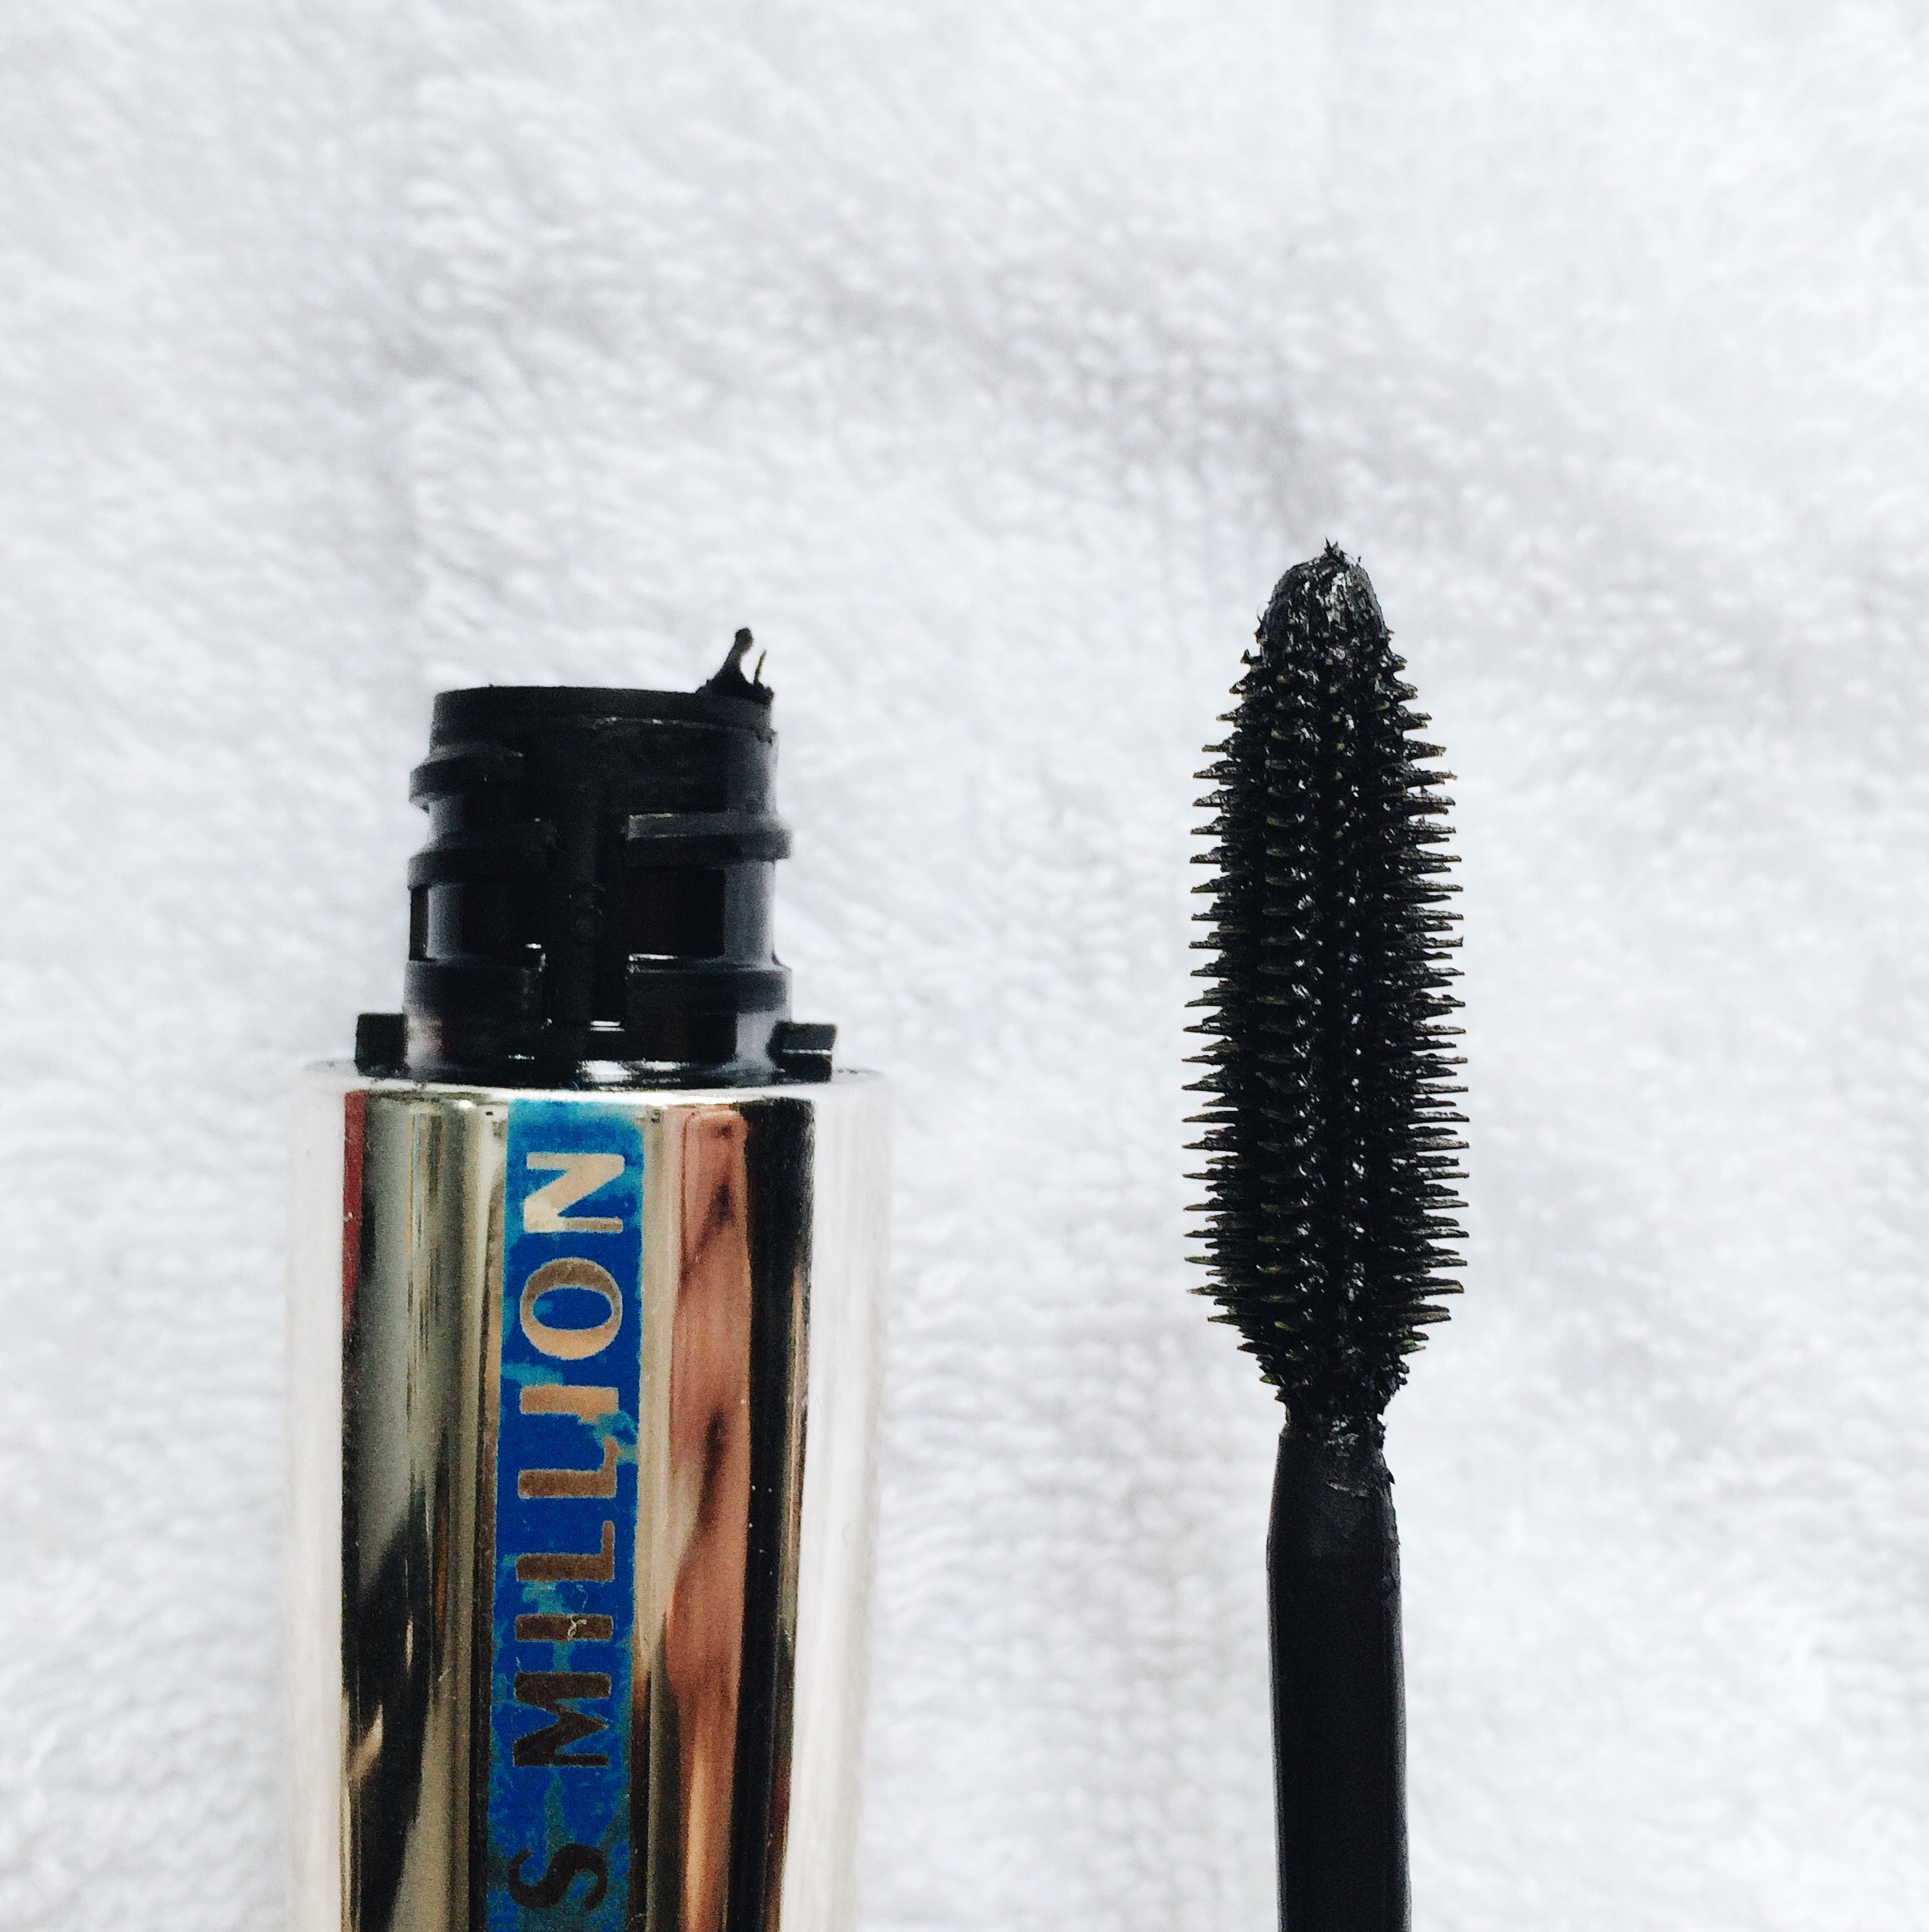 This brush has rubber bristles and it looks like it will really separate my lashes, making them look like it has more lashes. The waterproof formula will help hold the curl of my lashes.